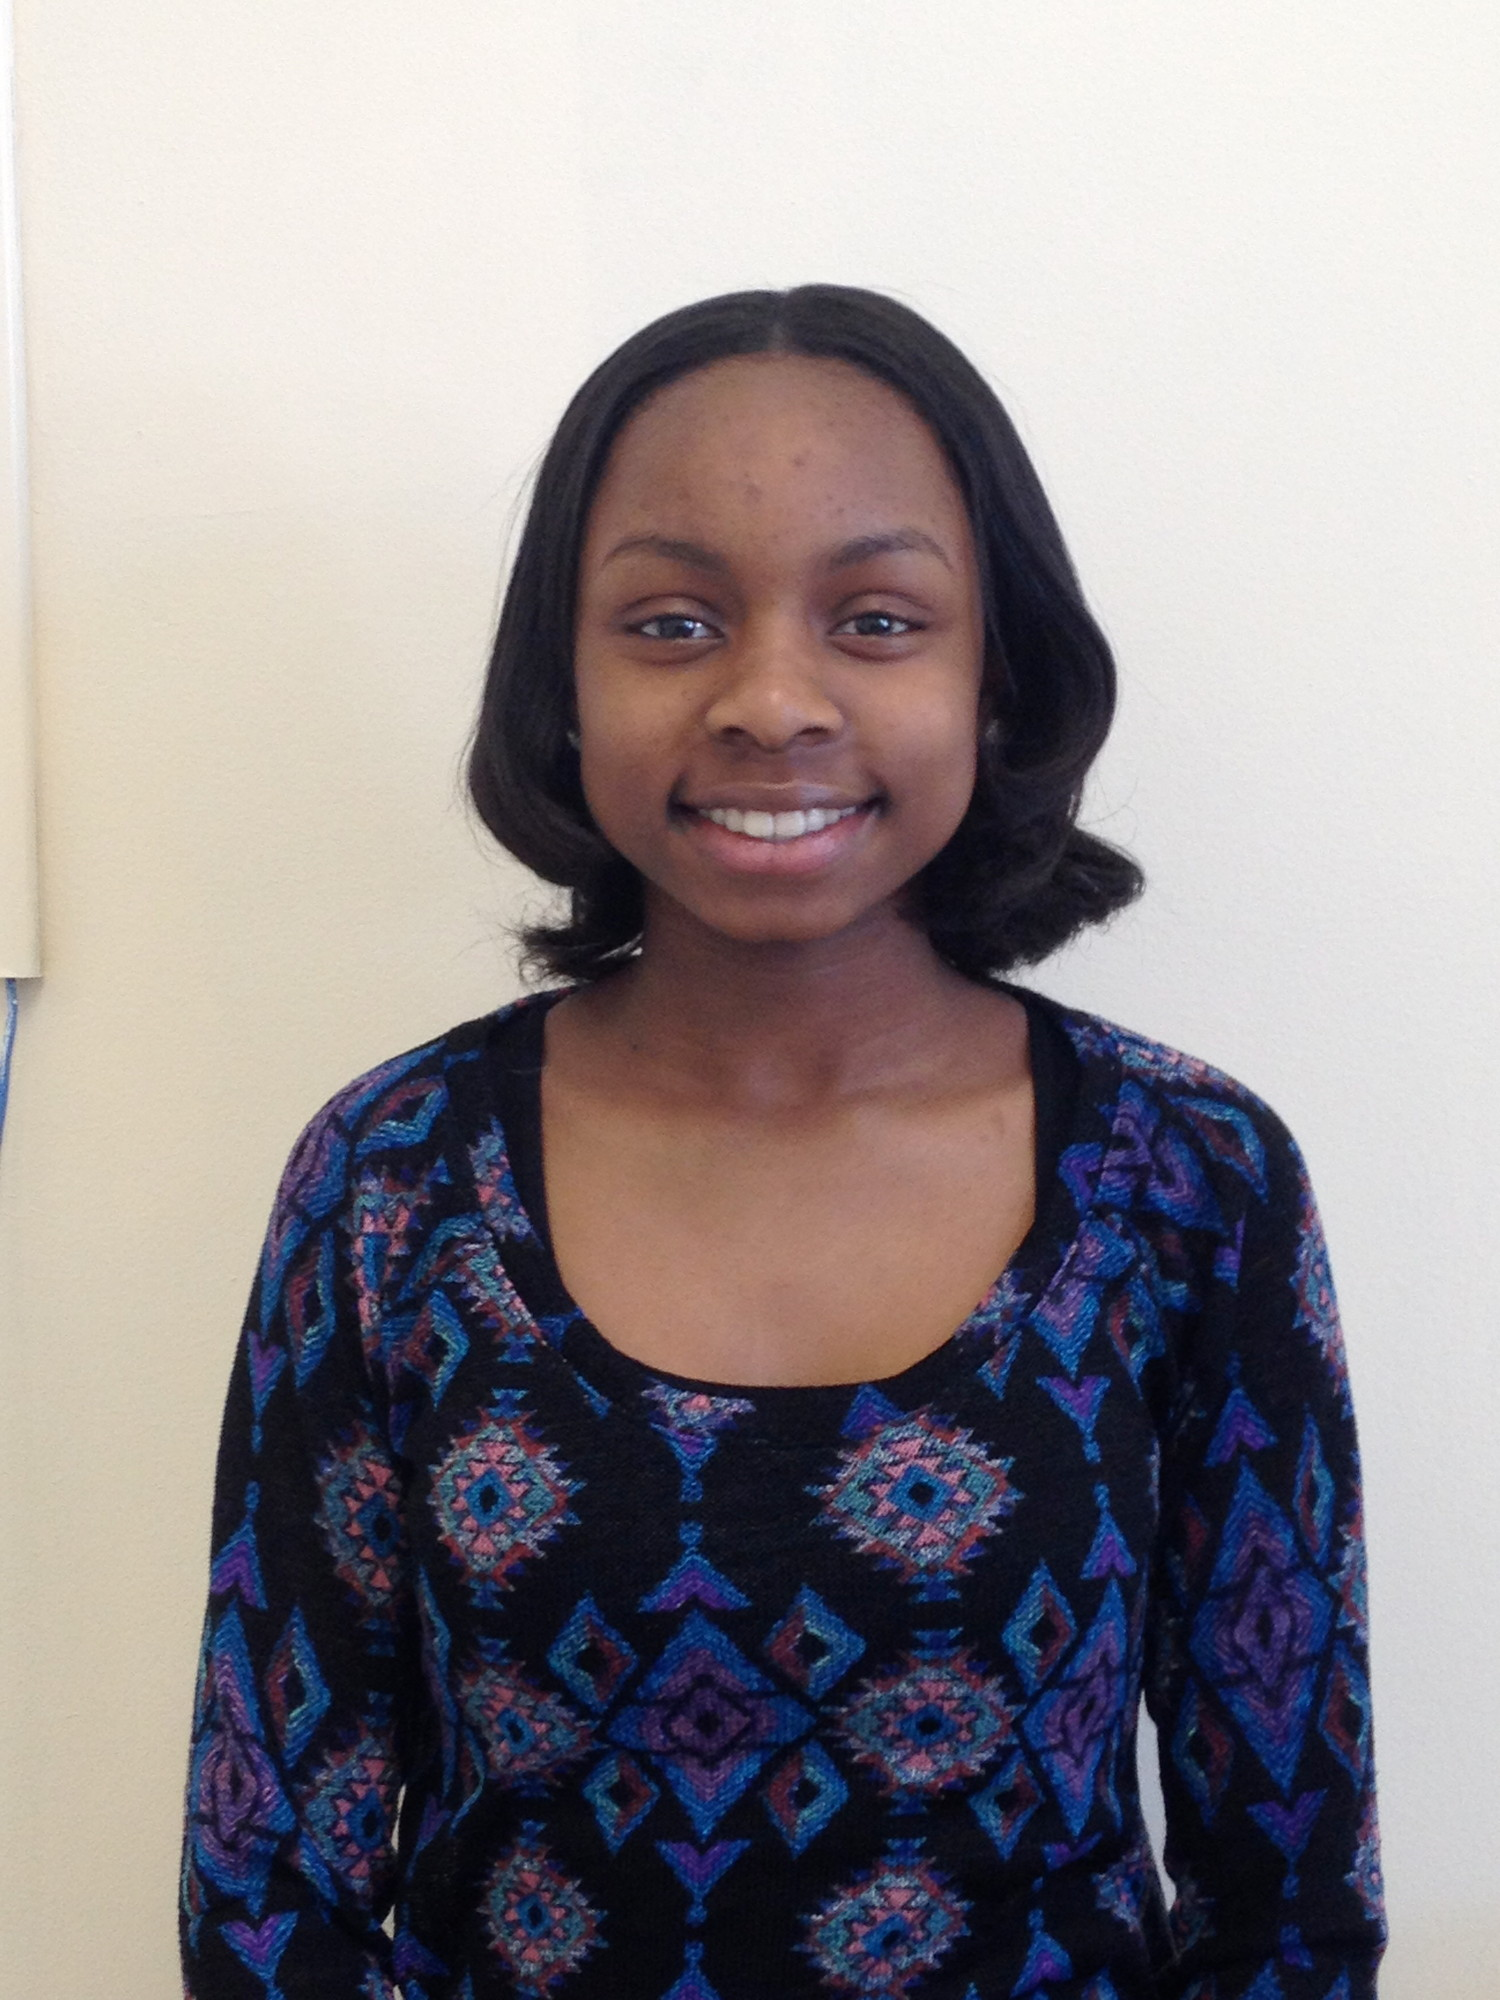 The Malverne School District congratulated Dennise Gregory on being a published writer after her poem �I Am Intelligent and Unique in My Own Way� was featured in the international publication �Creative Communications.�